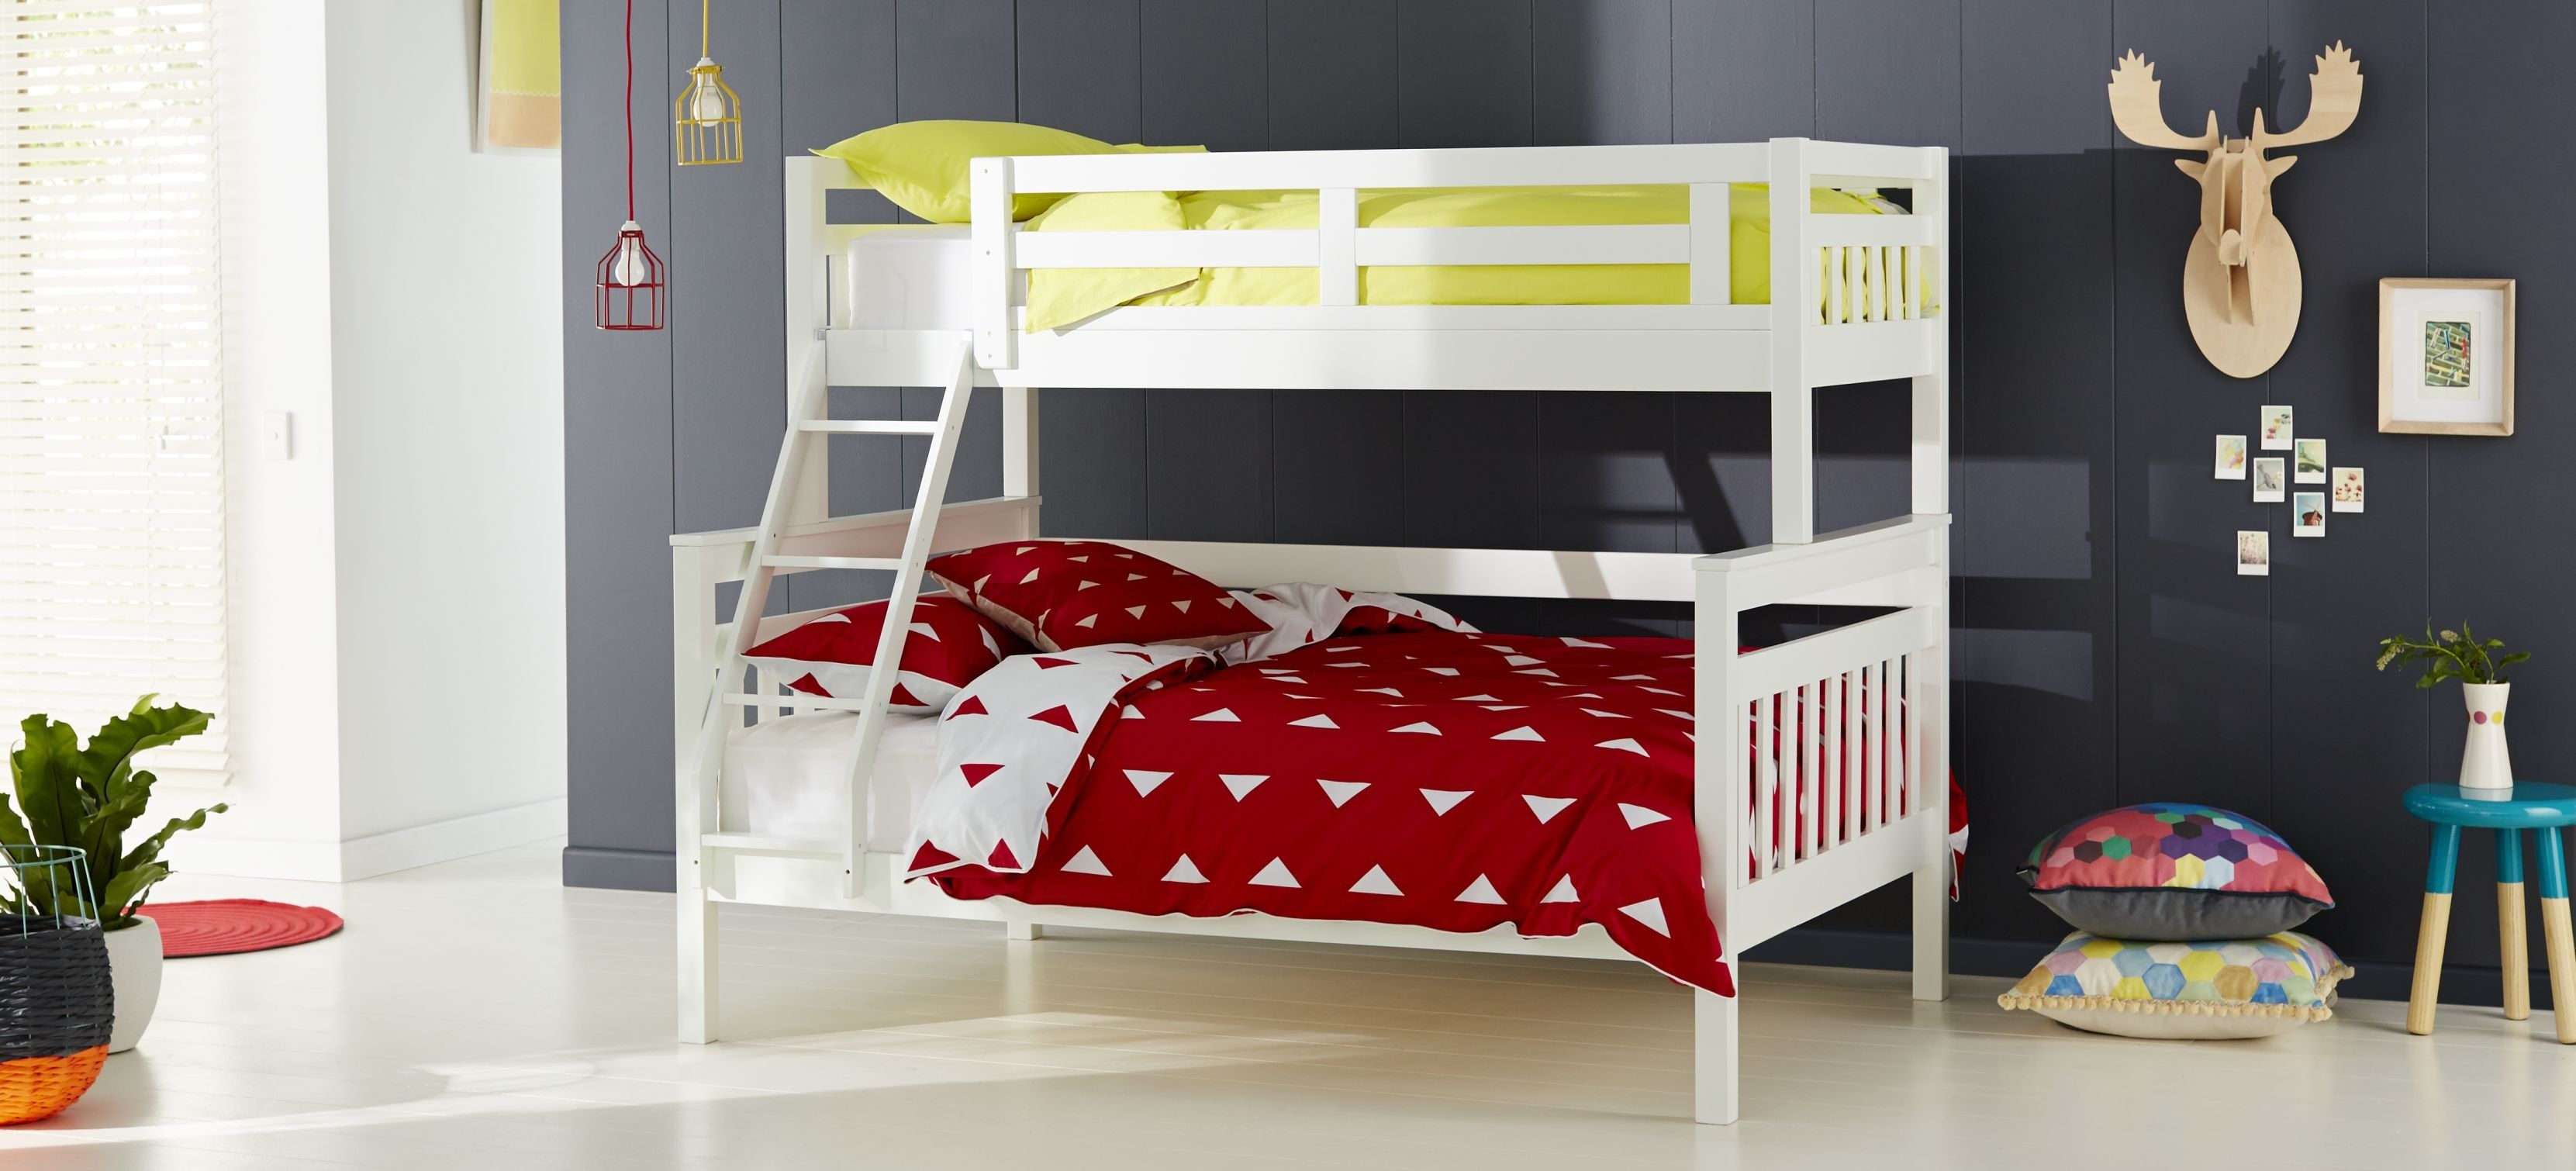 Kids Bedroom Suites Aztec Kids Bunk Beds In White Timber With Yellow And Red Patterned